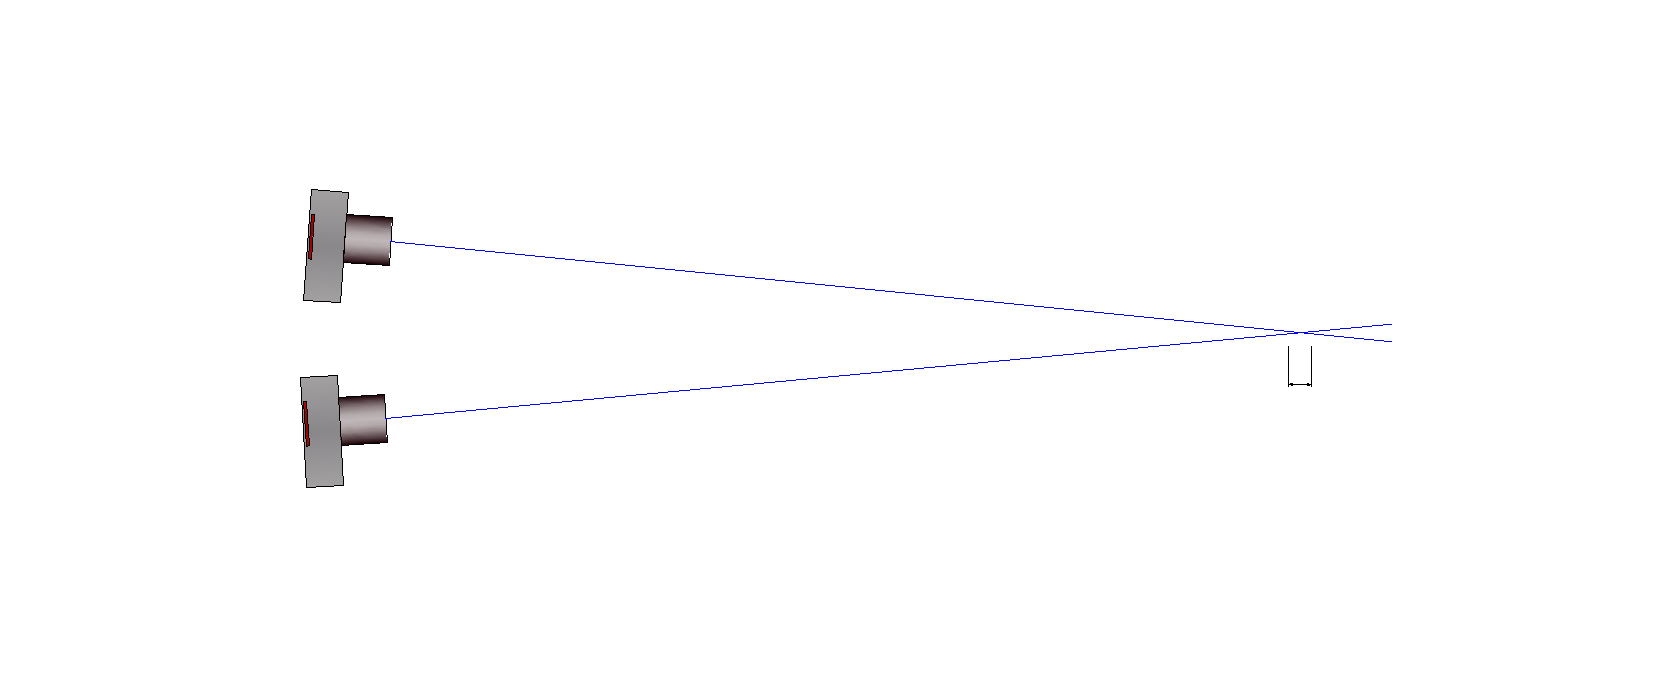 Beam intersection of two image measurements